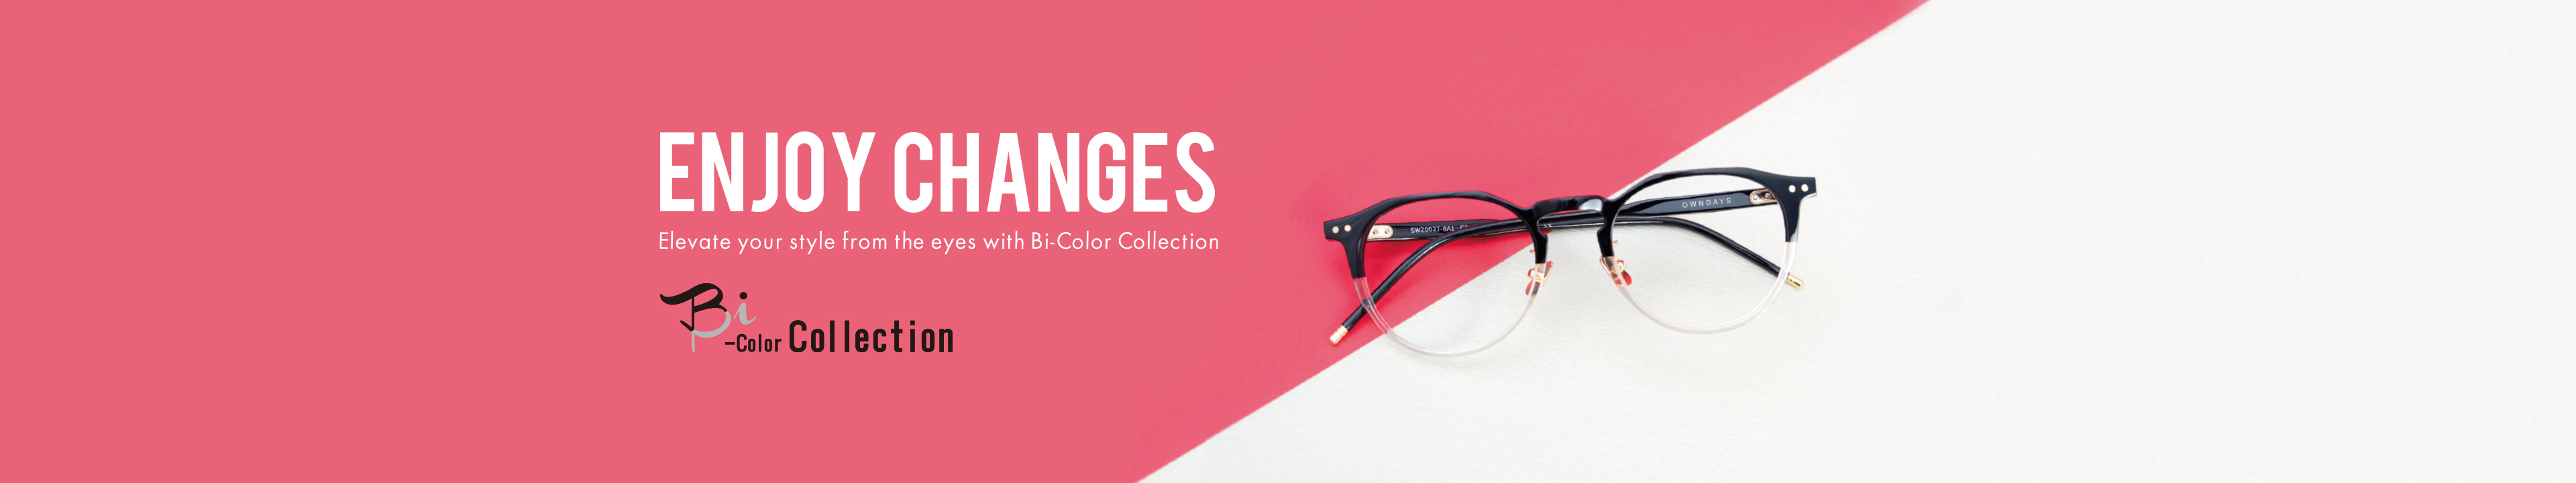 Bi-Color Collection